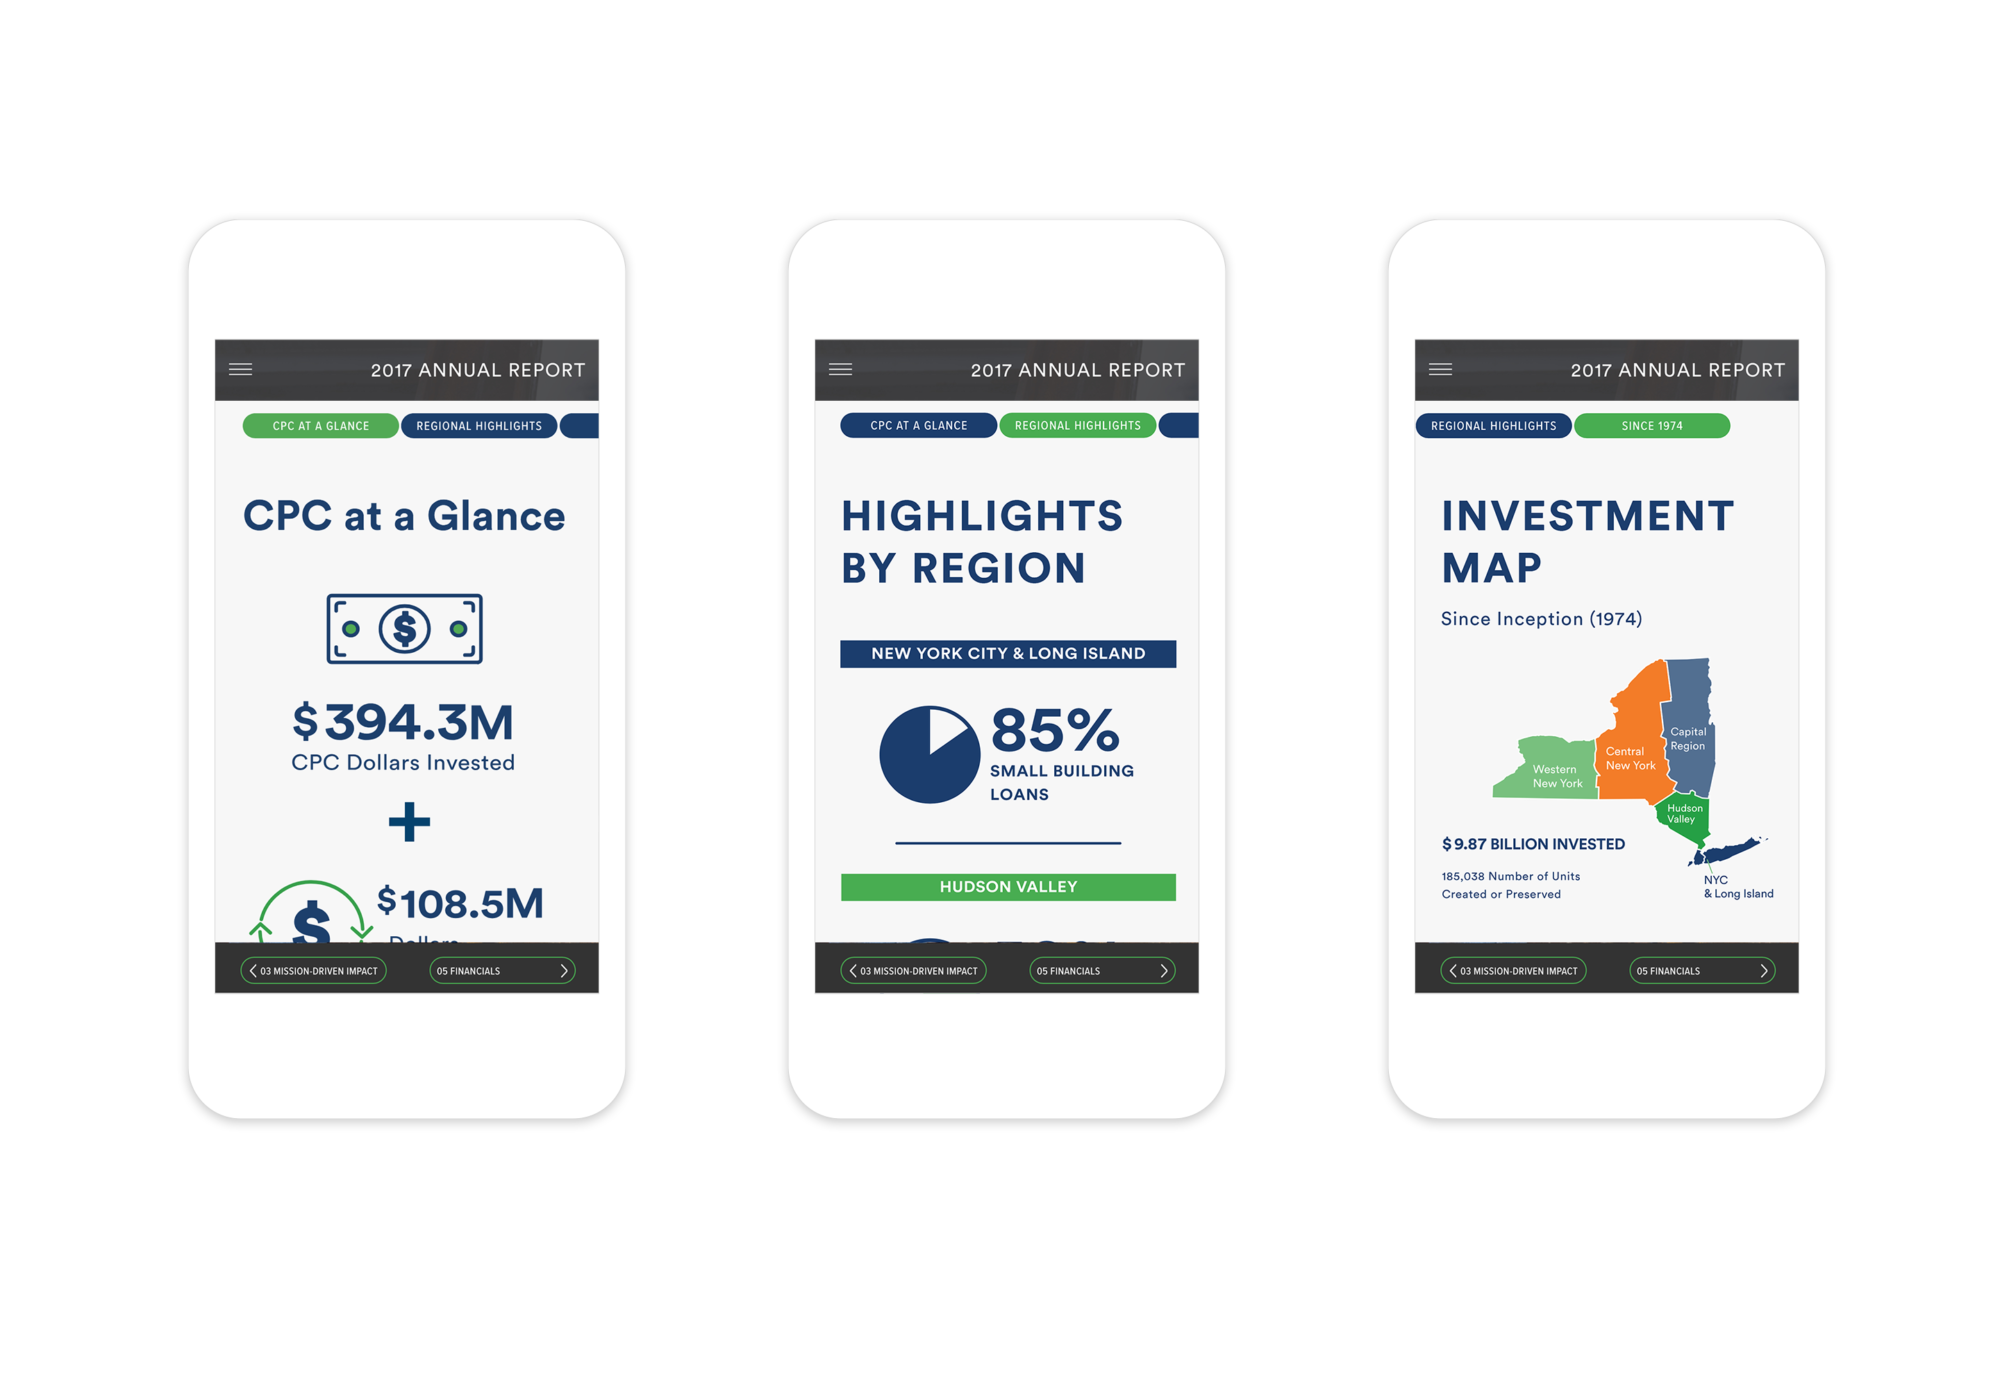 3 responsive mobile webpages showing infographics and a map